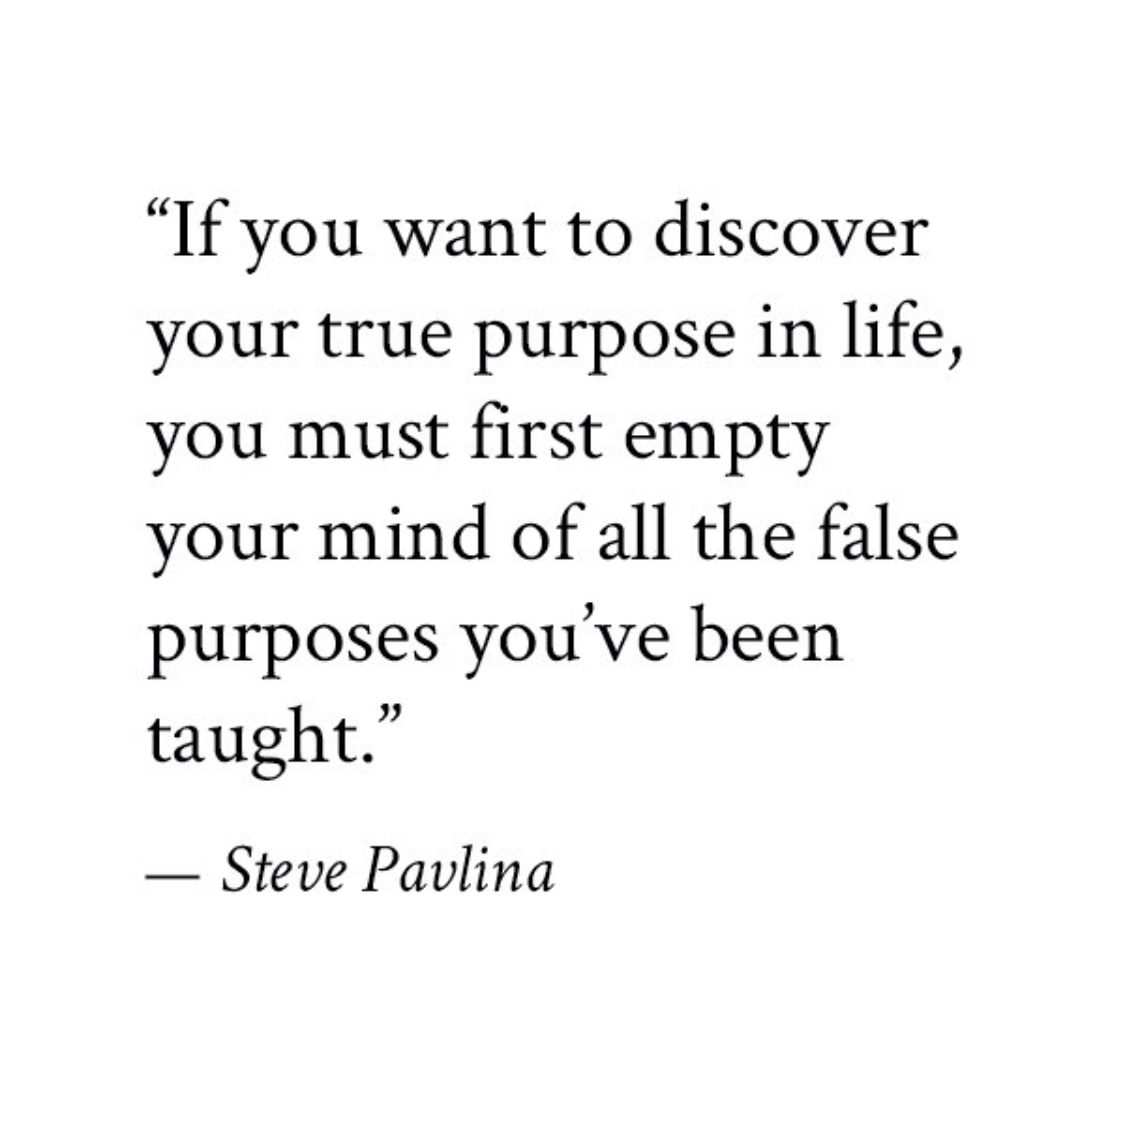 For more on discovering true purpose, check out Optimal